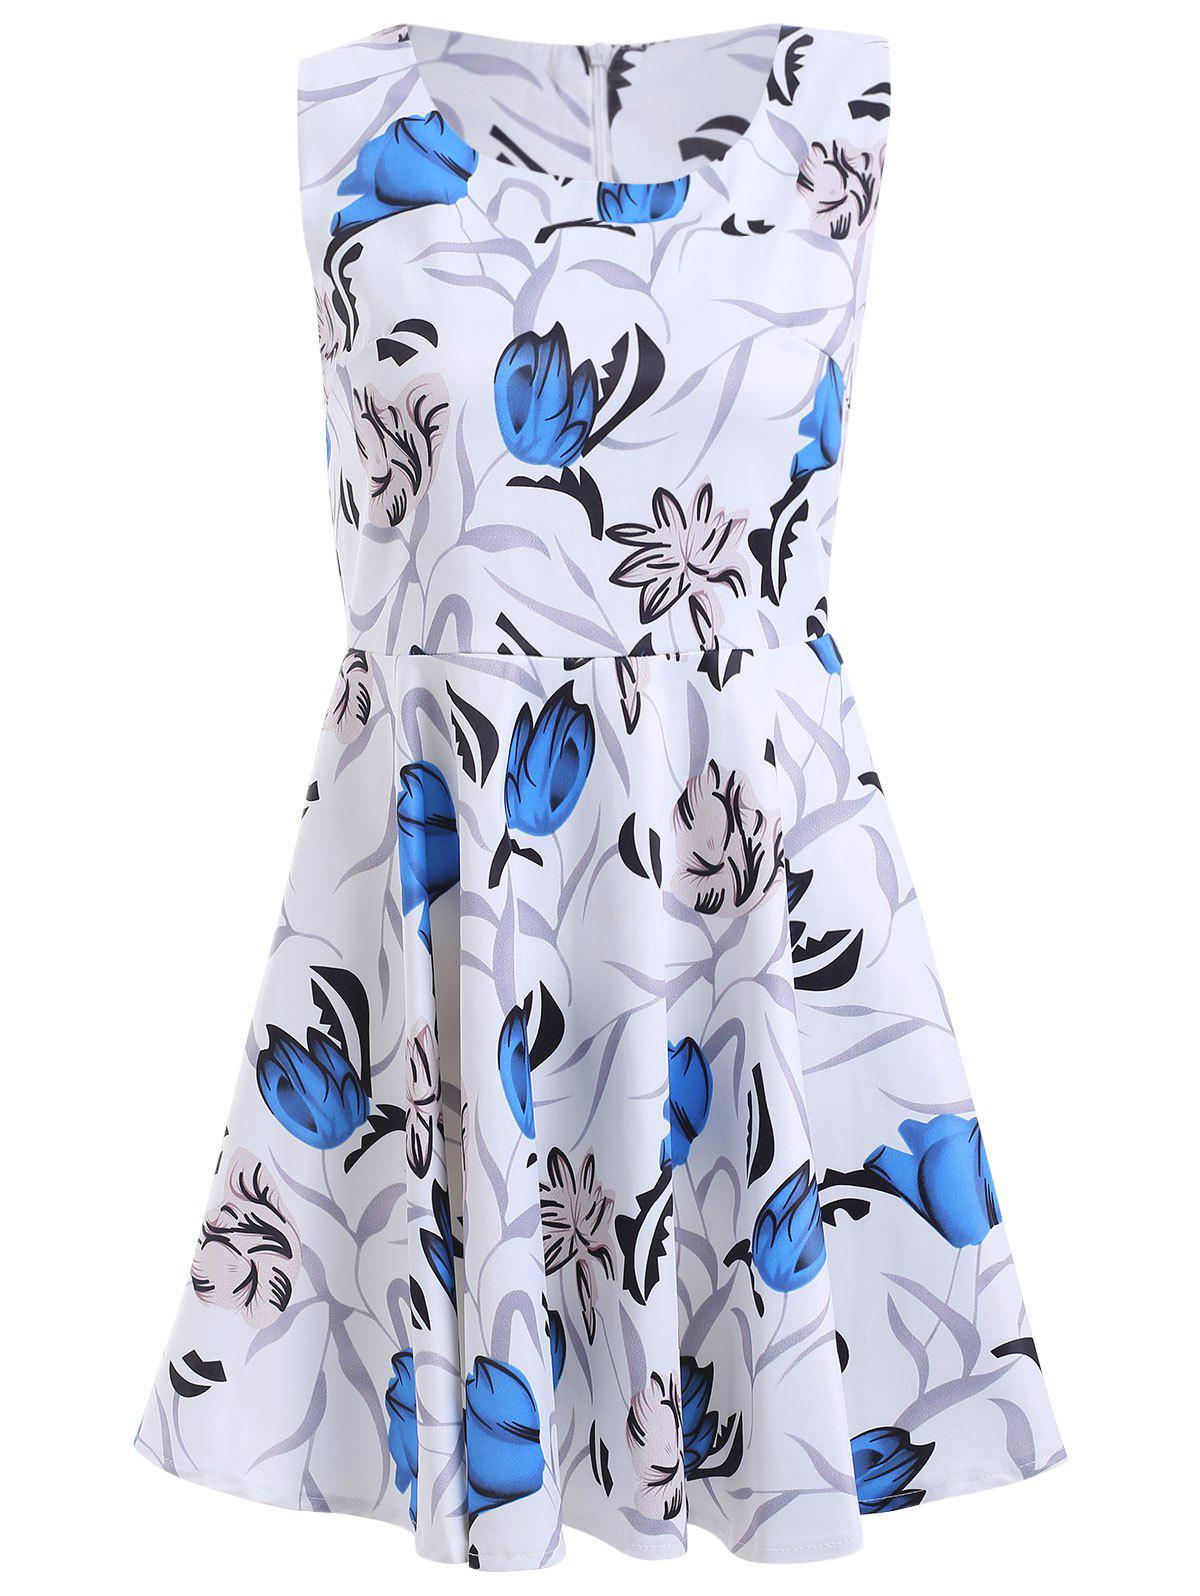 Sweet High Waist Floral Print Dress - BLUE XL